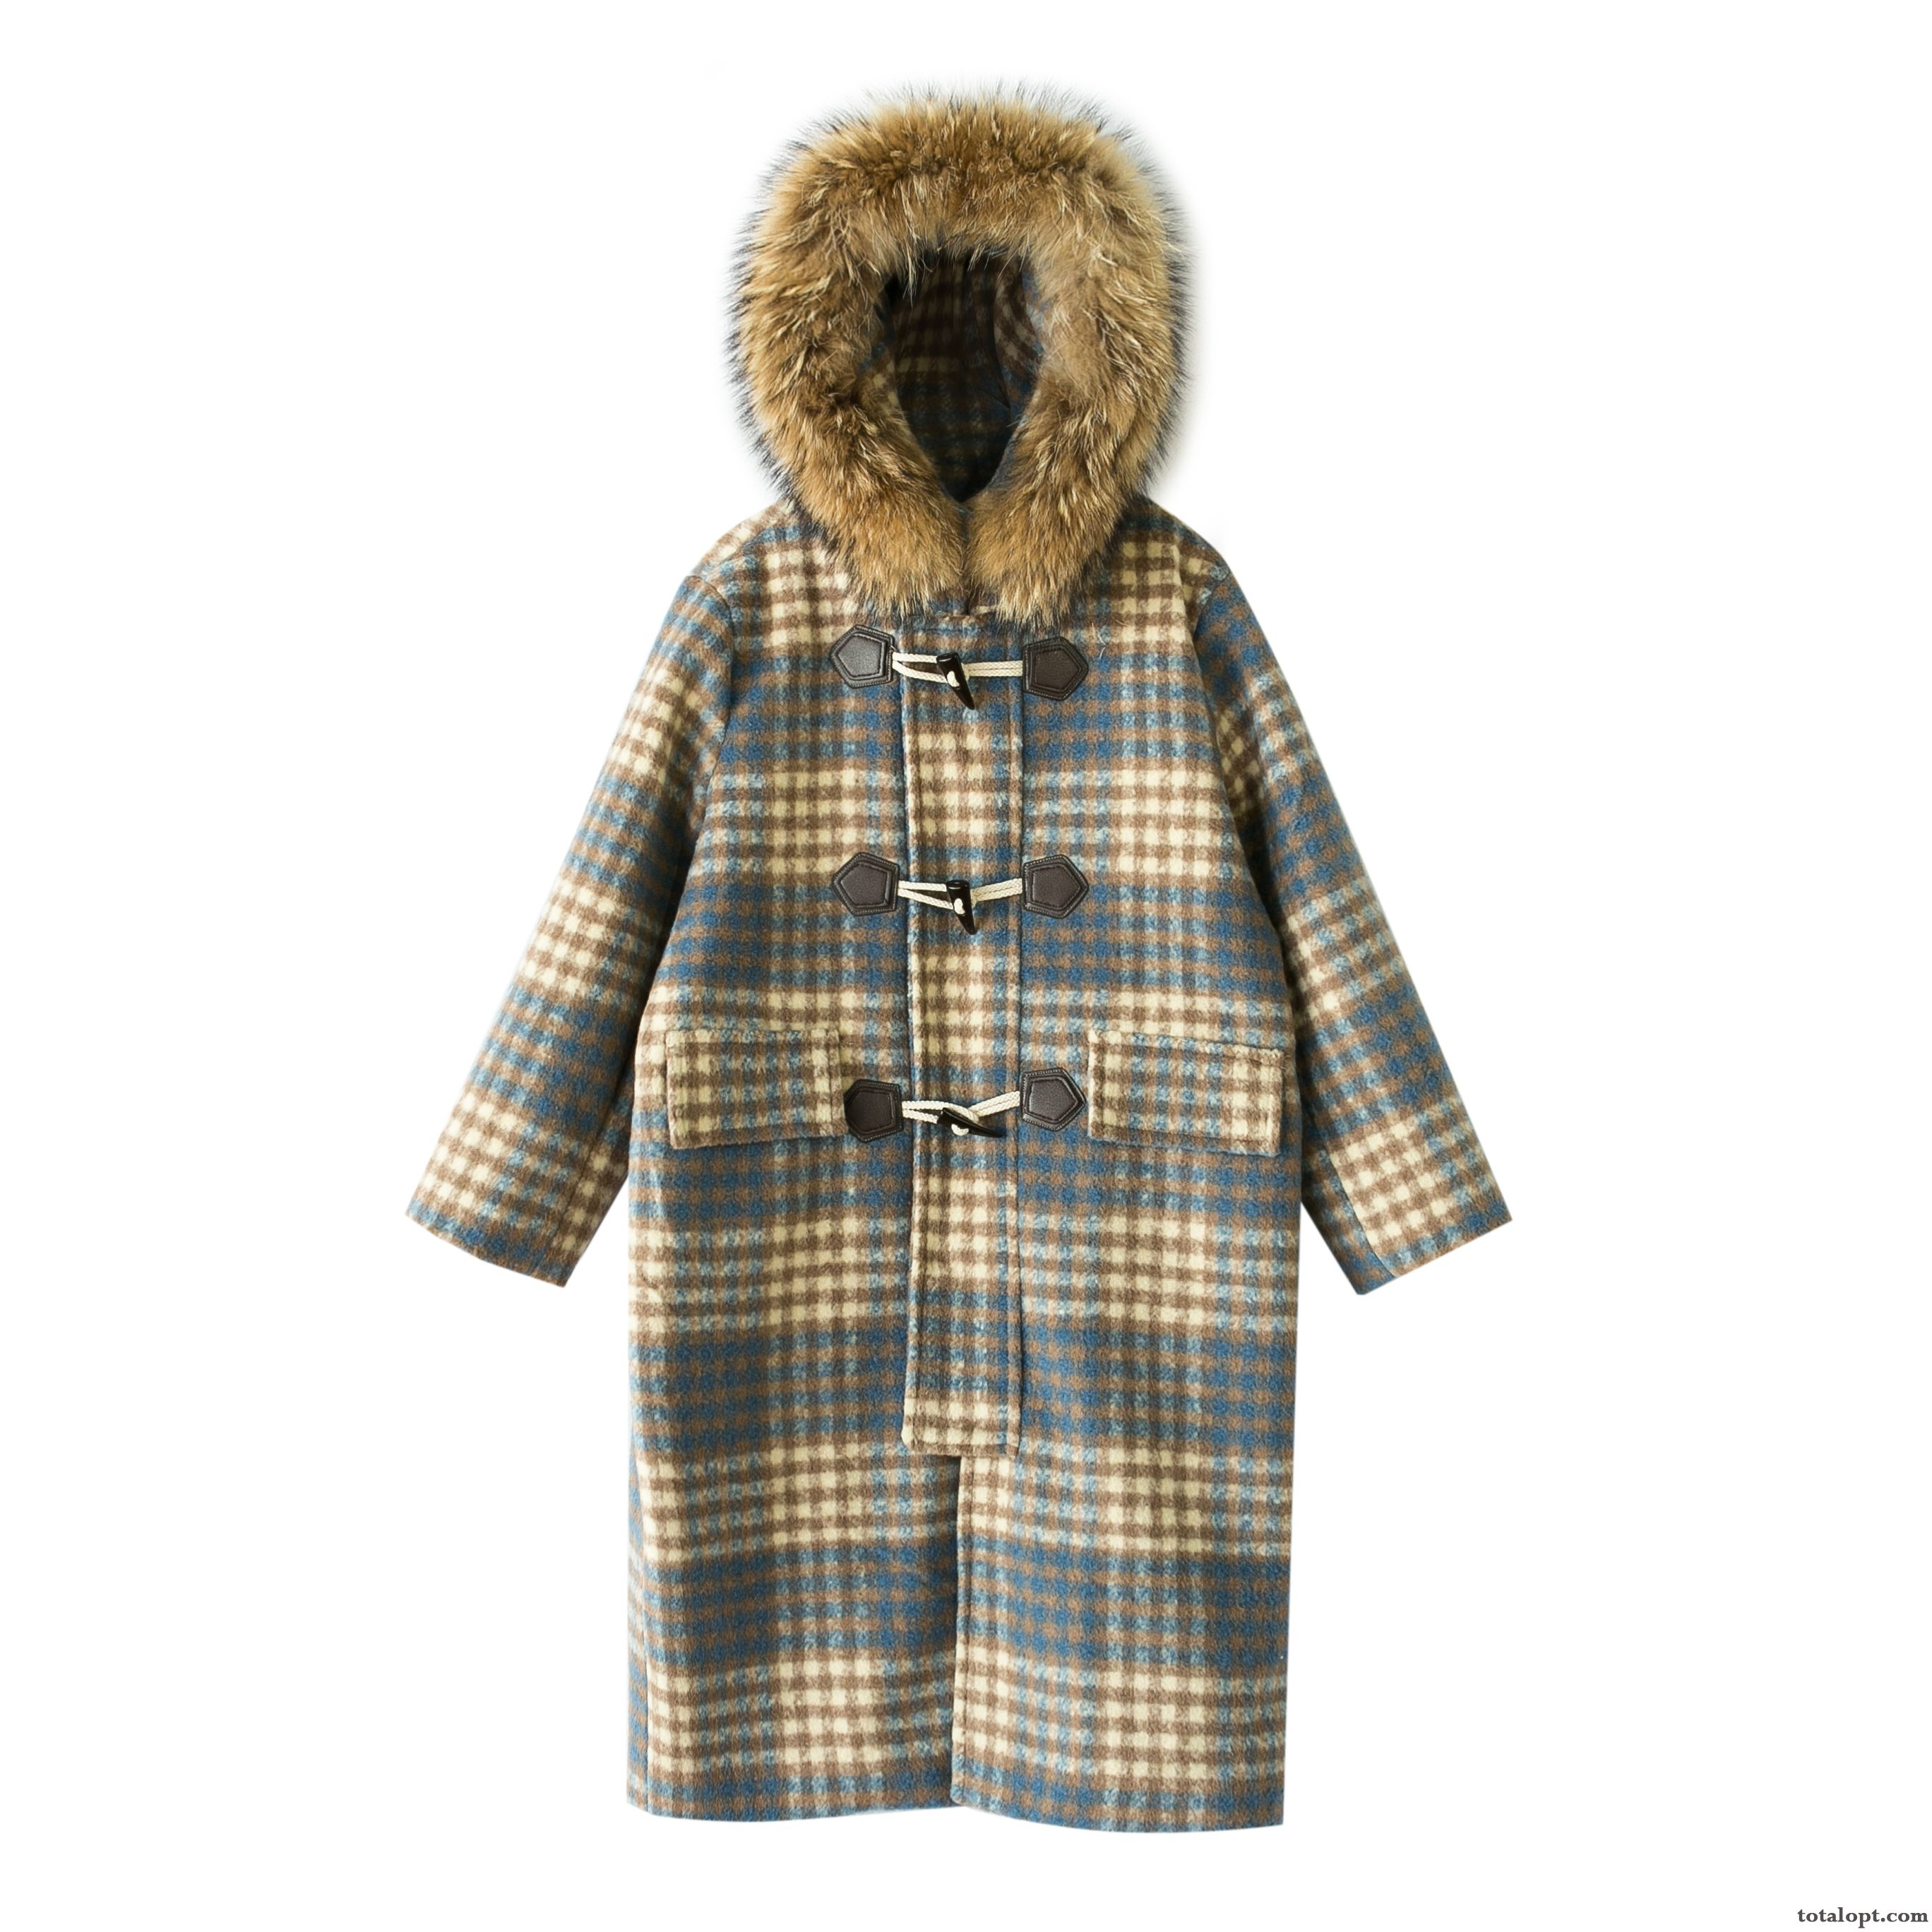 Cheap Big Winter Clothes Checks New Blue Overcoat Coffee White